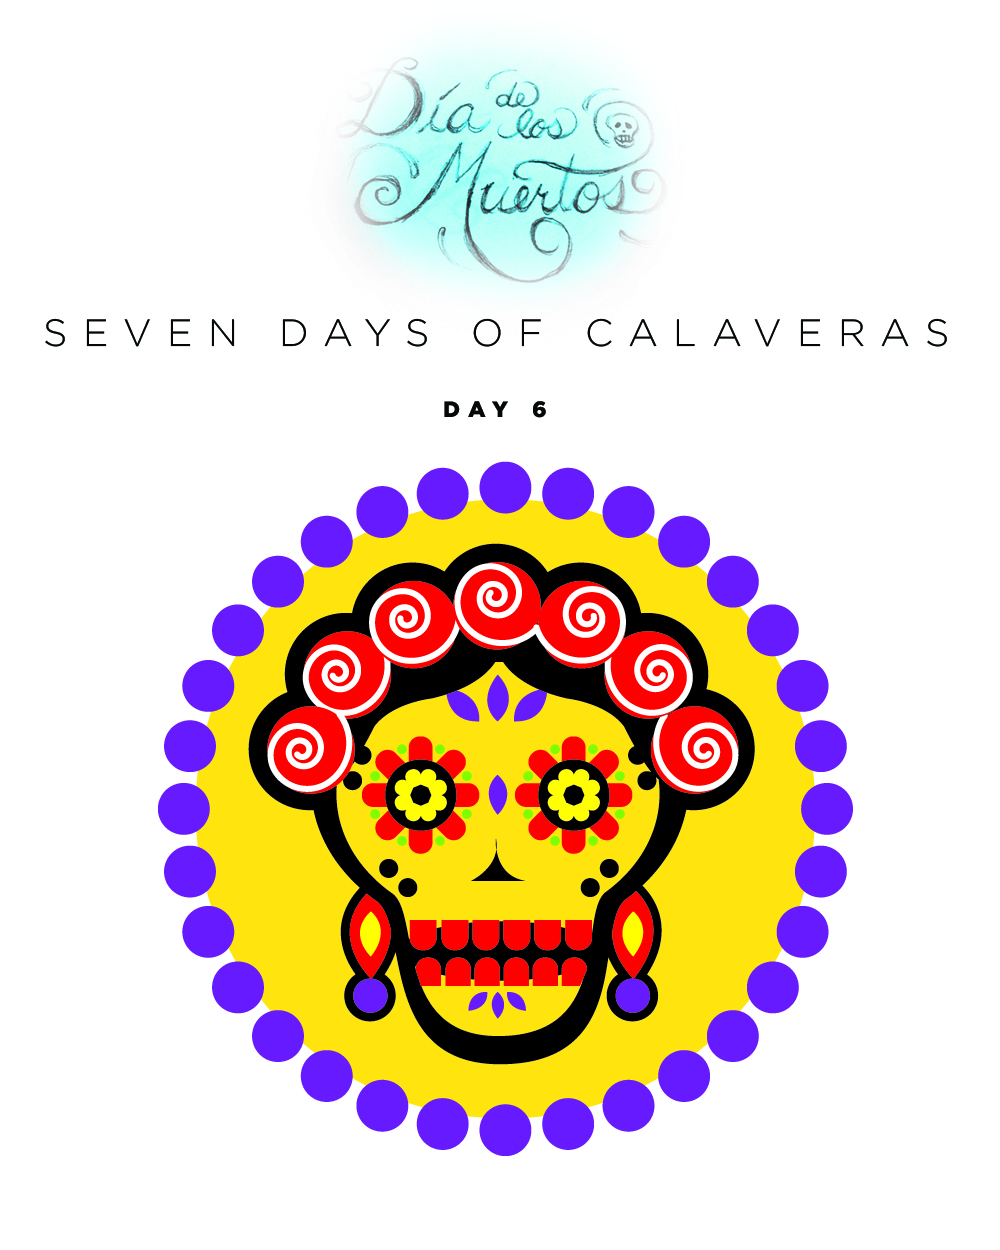 SEVEN days of calaveras day 6